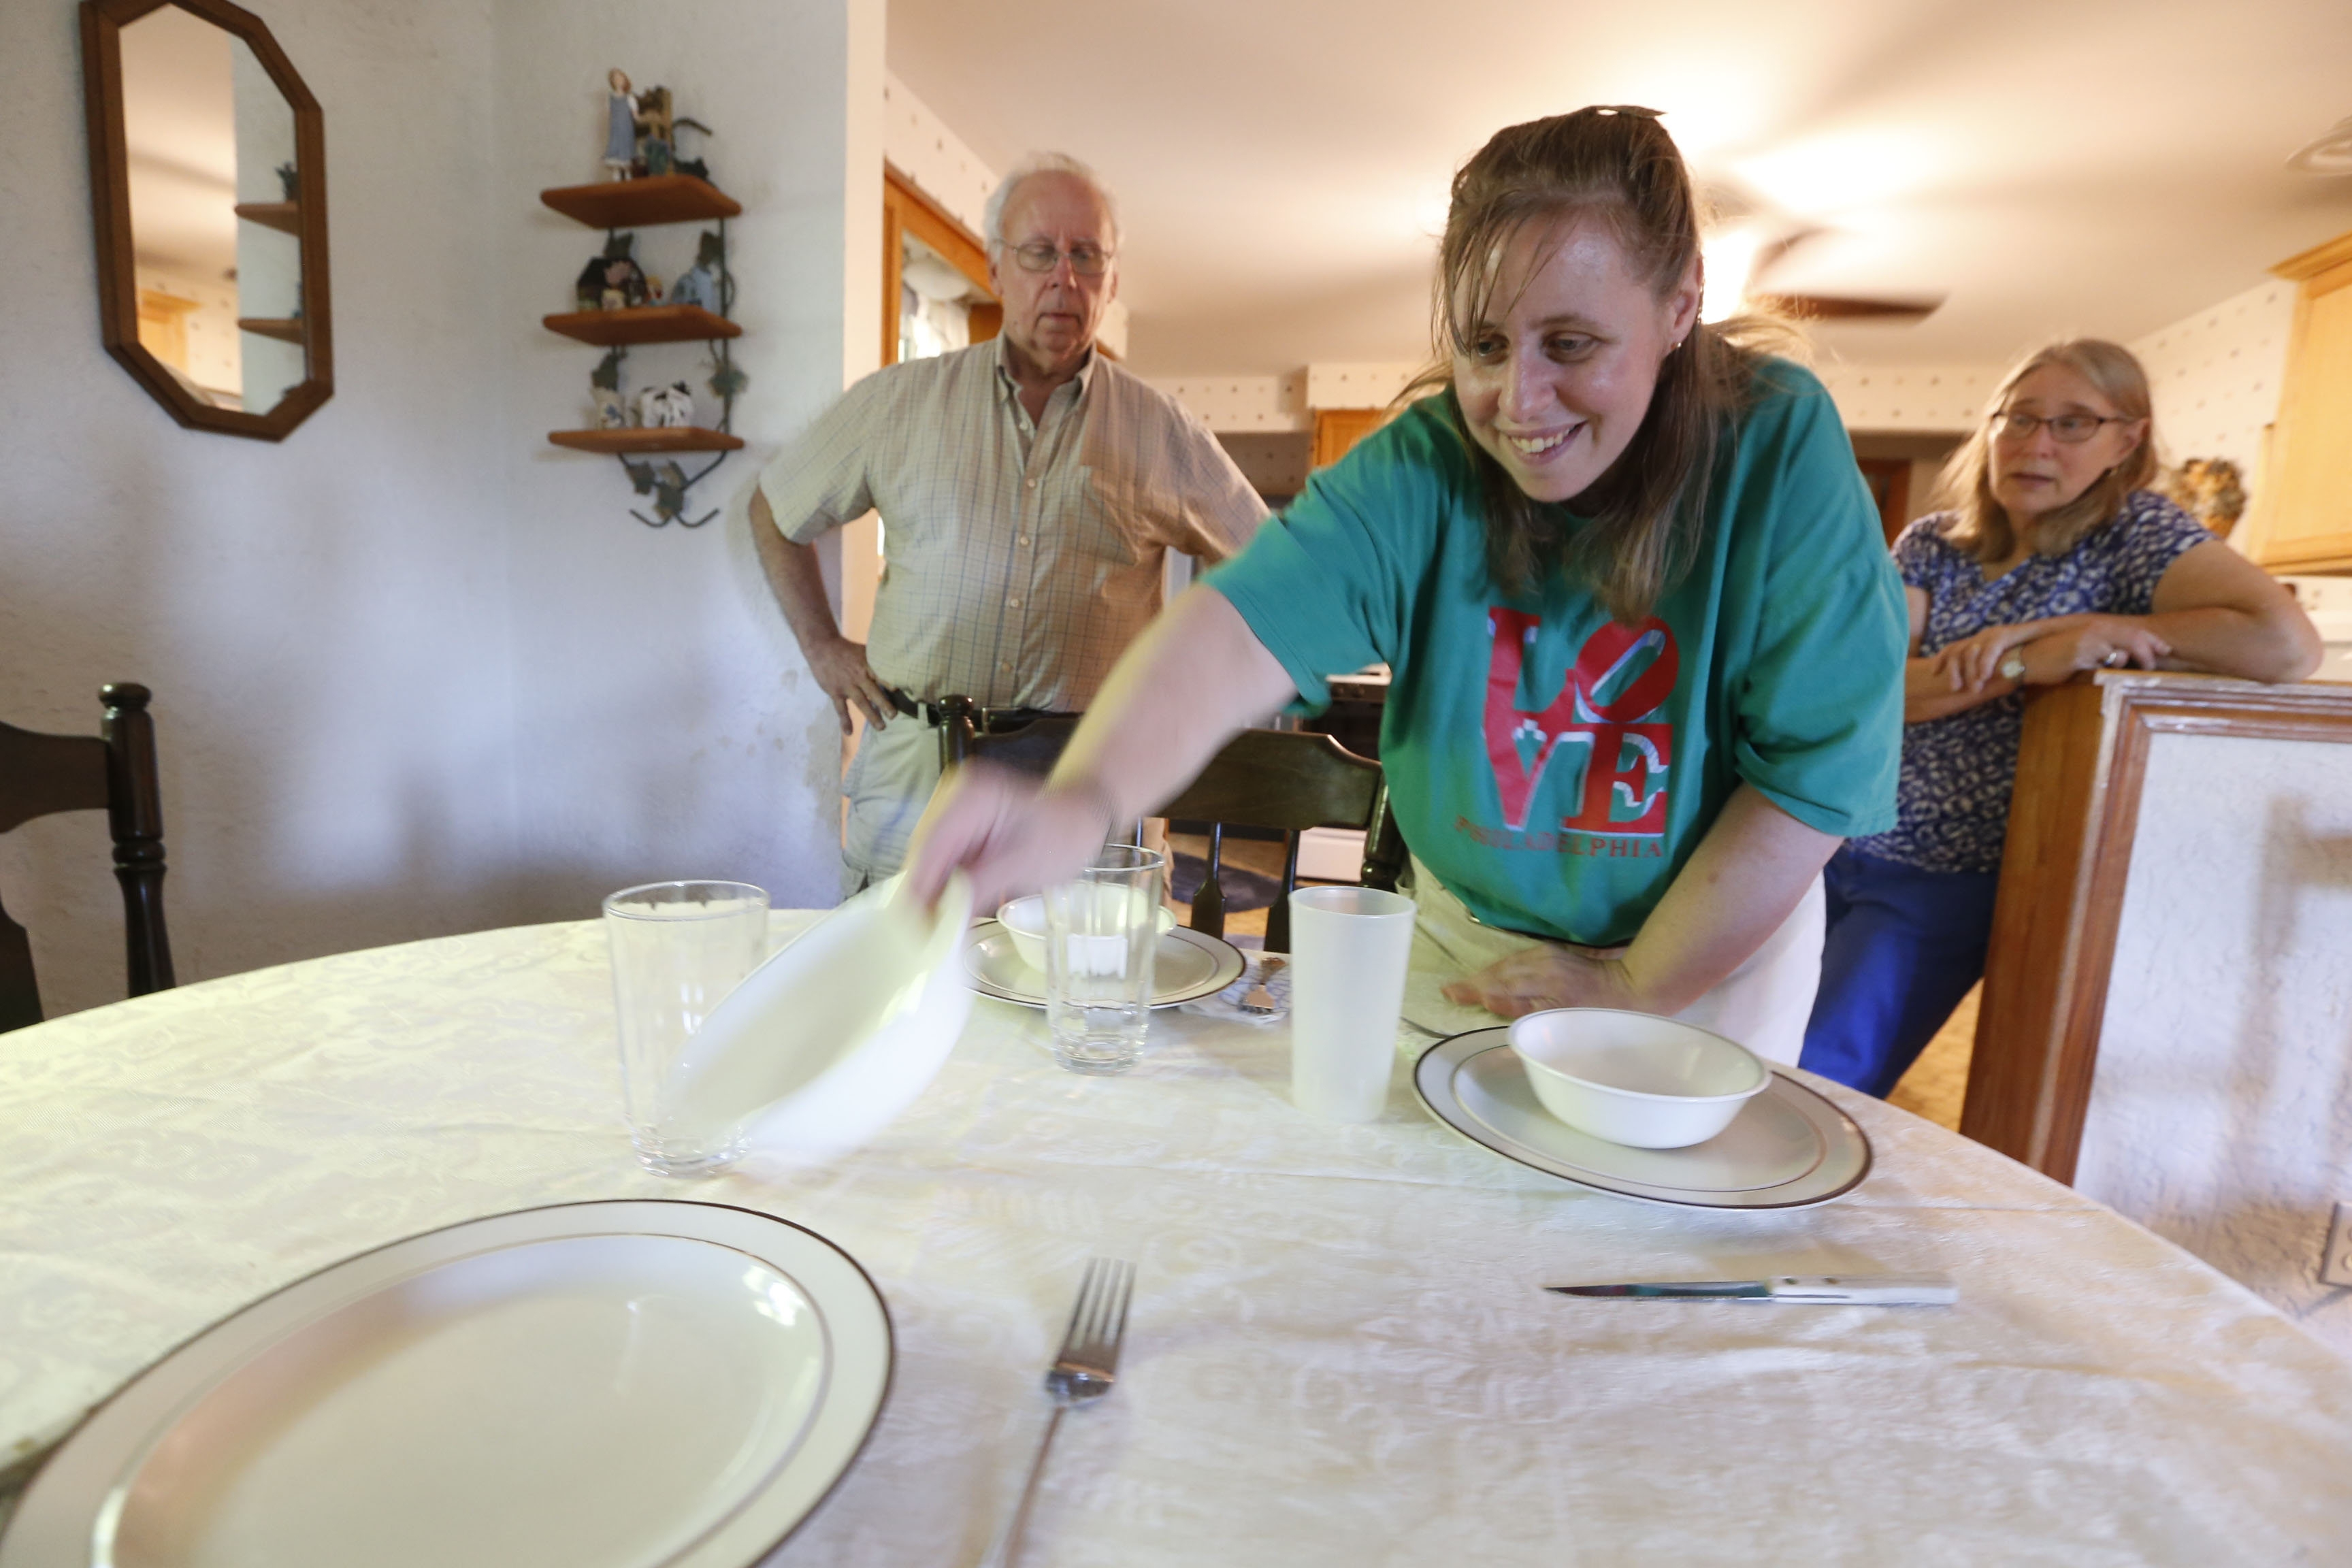 Here's Amanda setting the table. This is the story of Richard and Dawn DiCarlo with their 41-year-old daughter, Amanda.  This was at their Cheektowaga home on Thursday, Sept. 1, 2016.  (Robert Kirkham/Buffalo News)